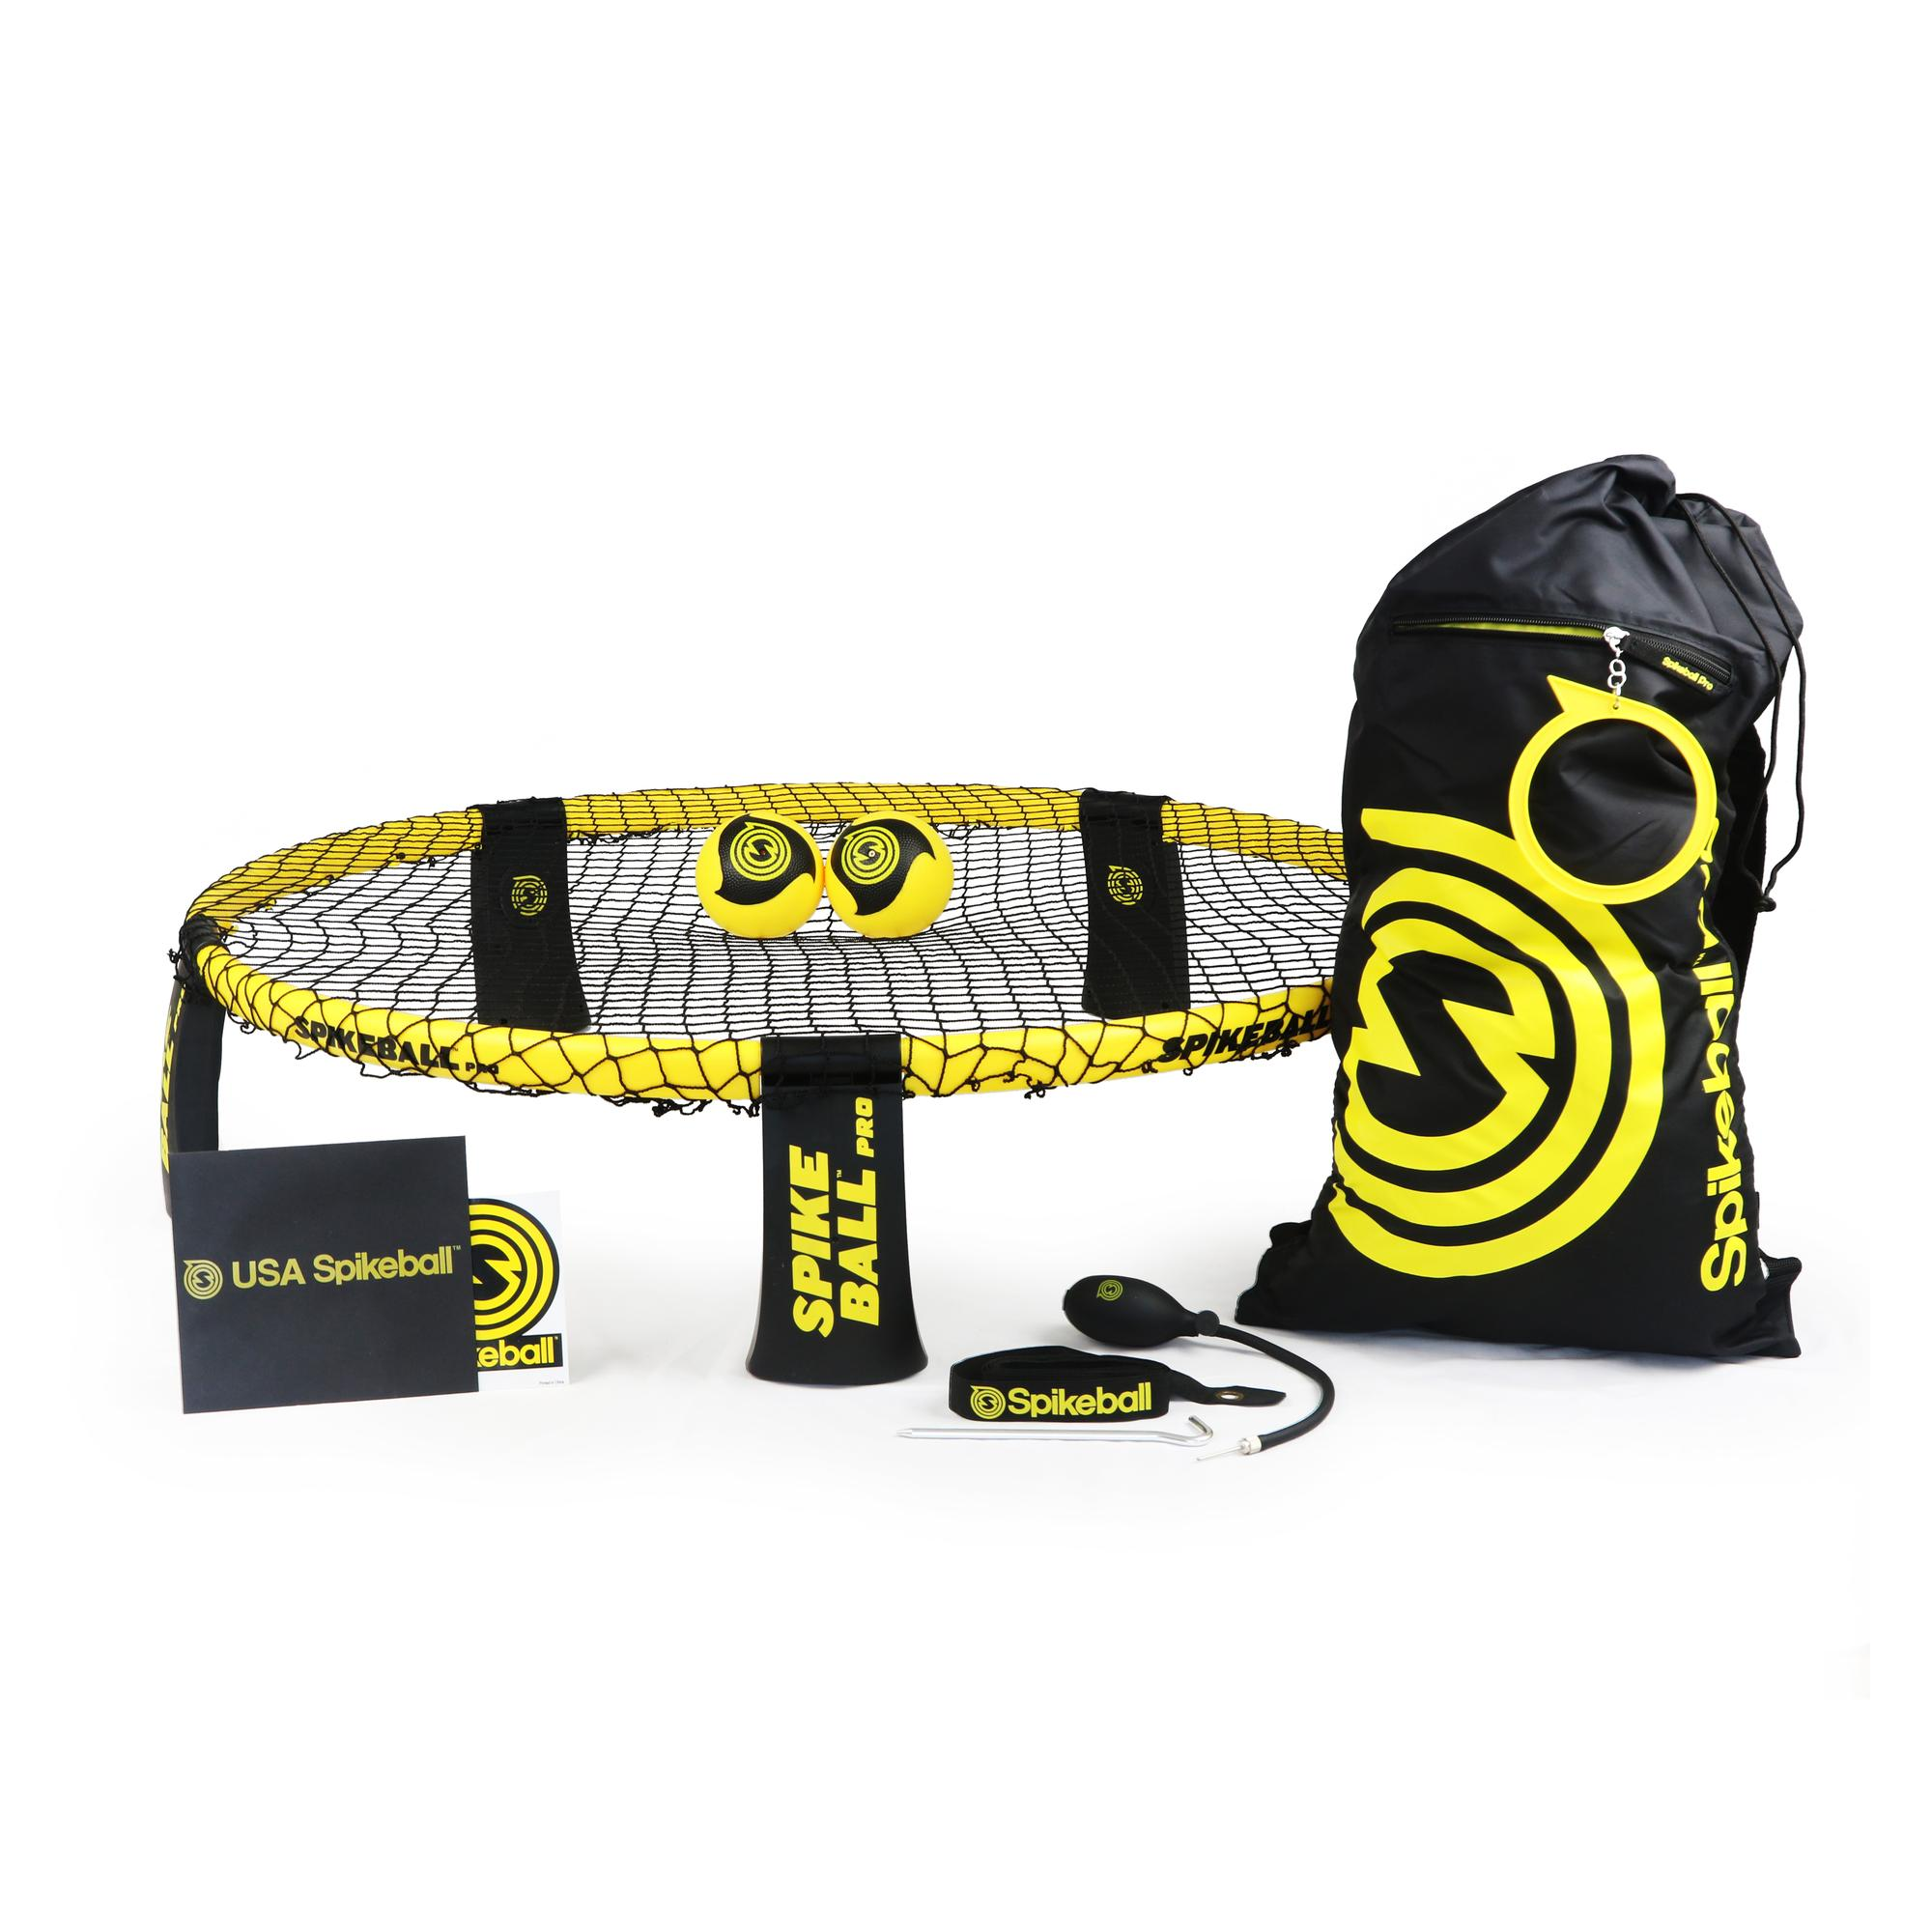 Buy your Spikeball set here and support us!